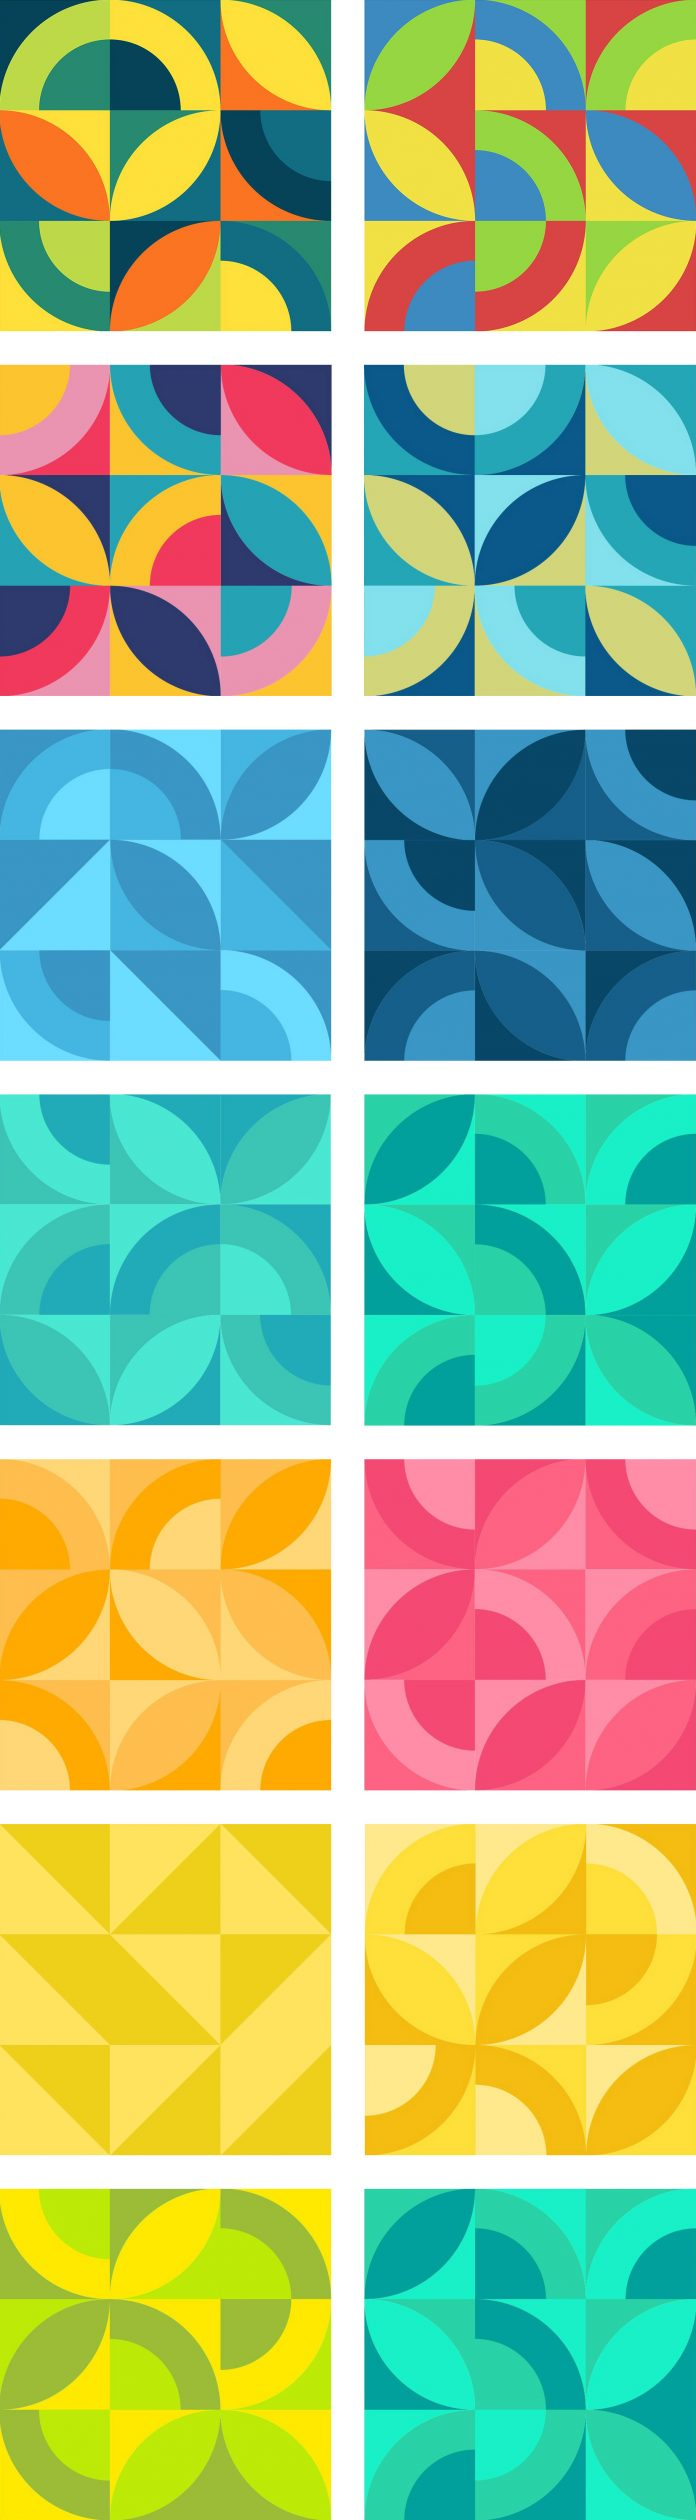 Organic Squares Patterns - 30 seamless vector graphics